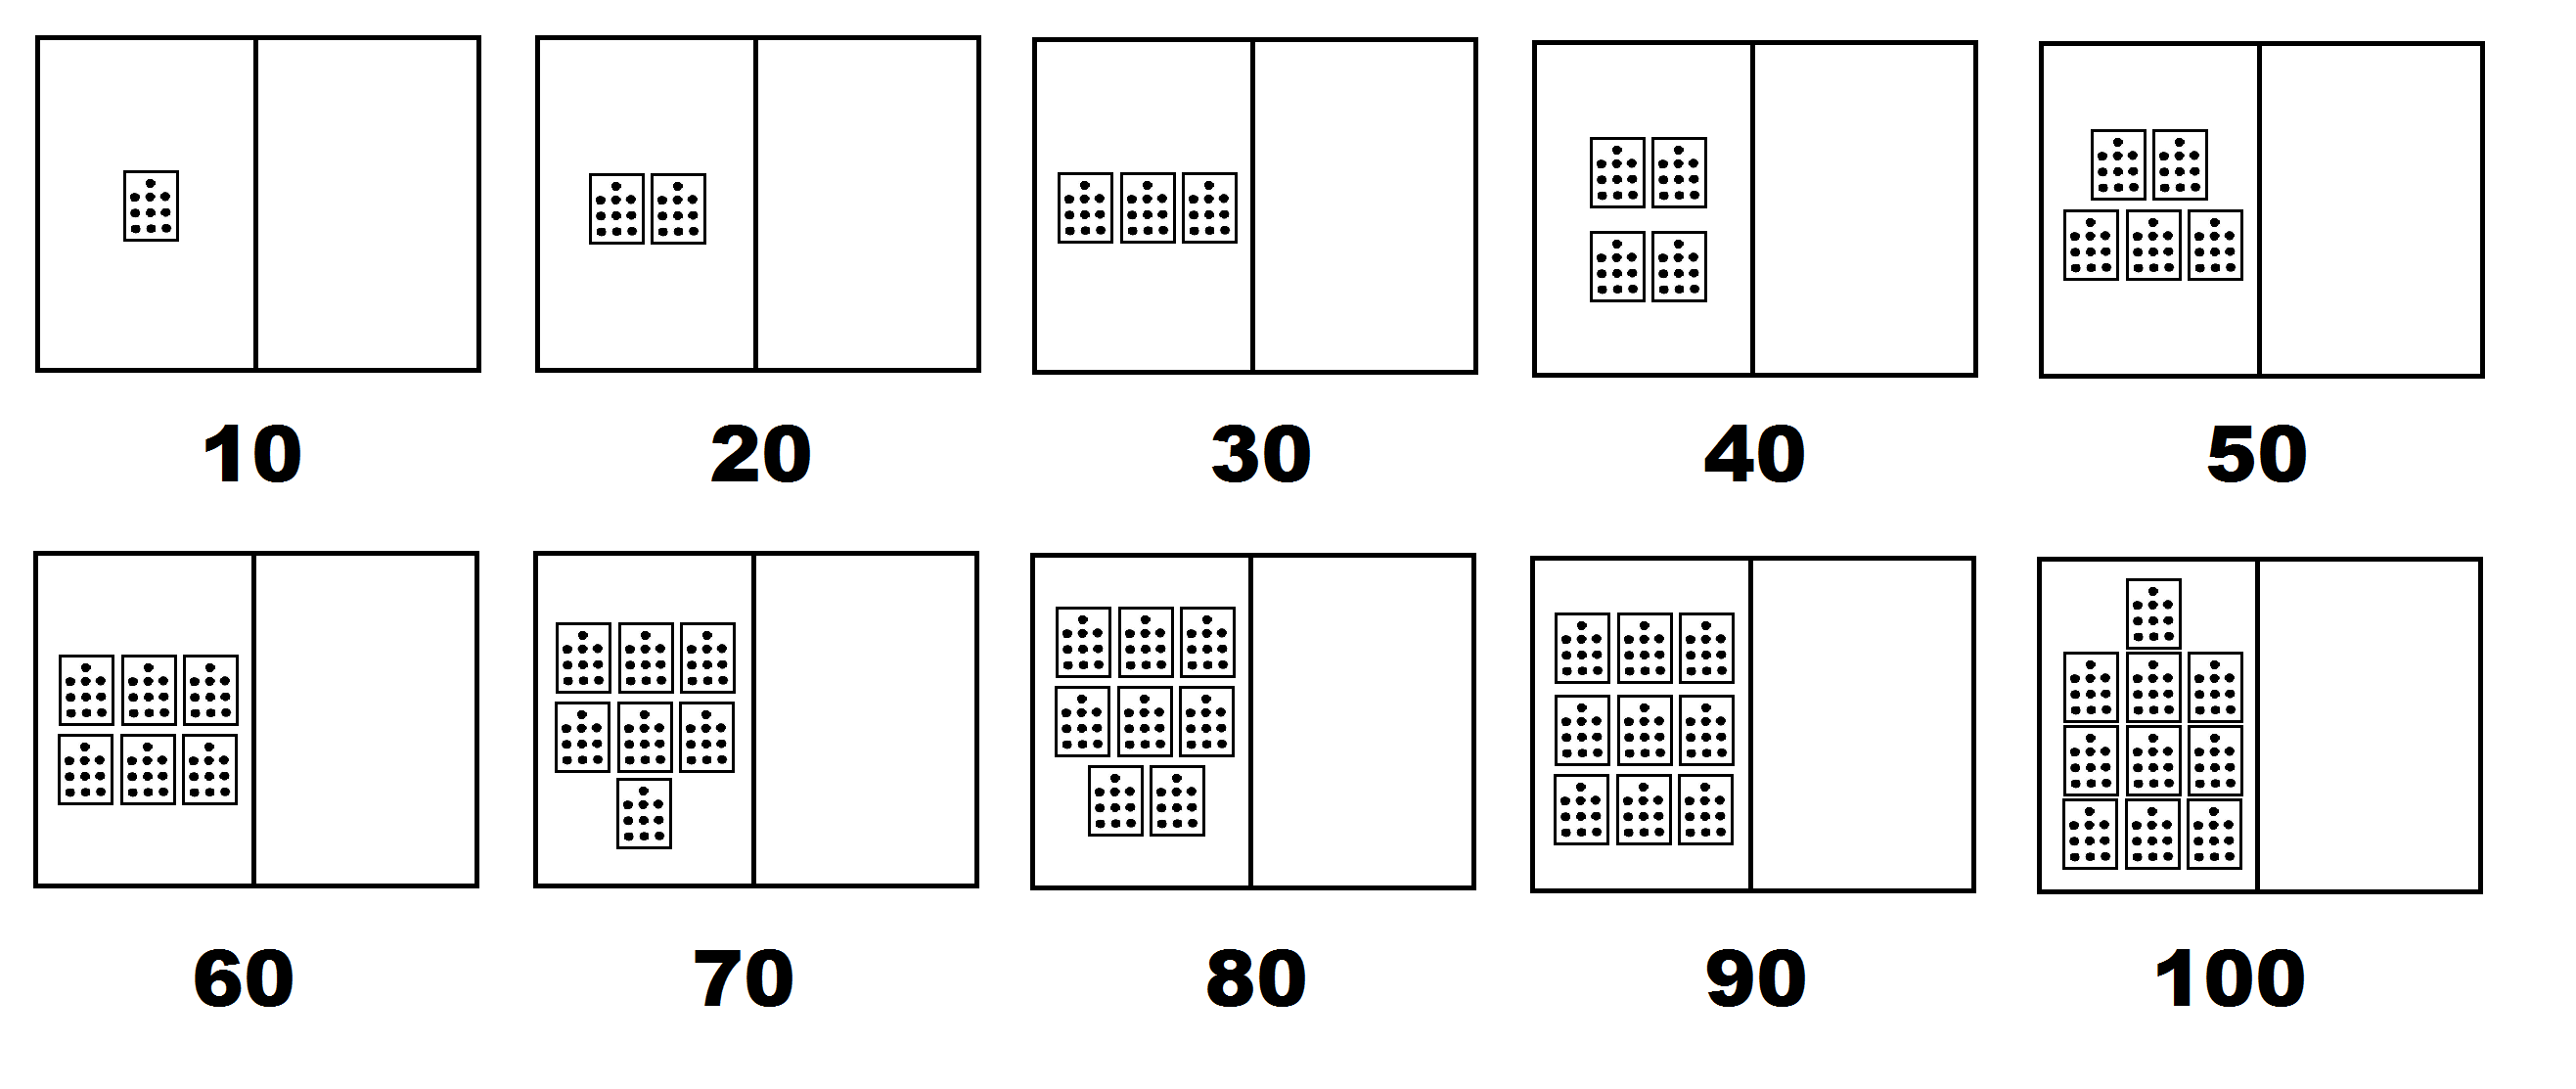 #teaching a child to count? Use this graphic to explain #